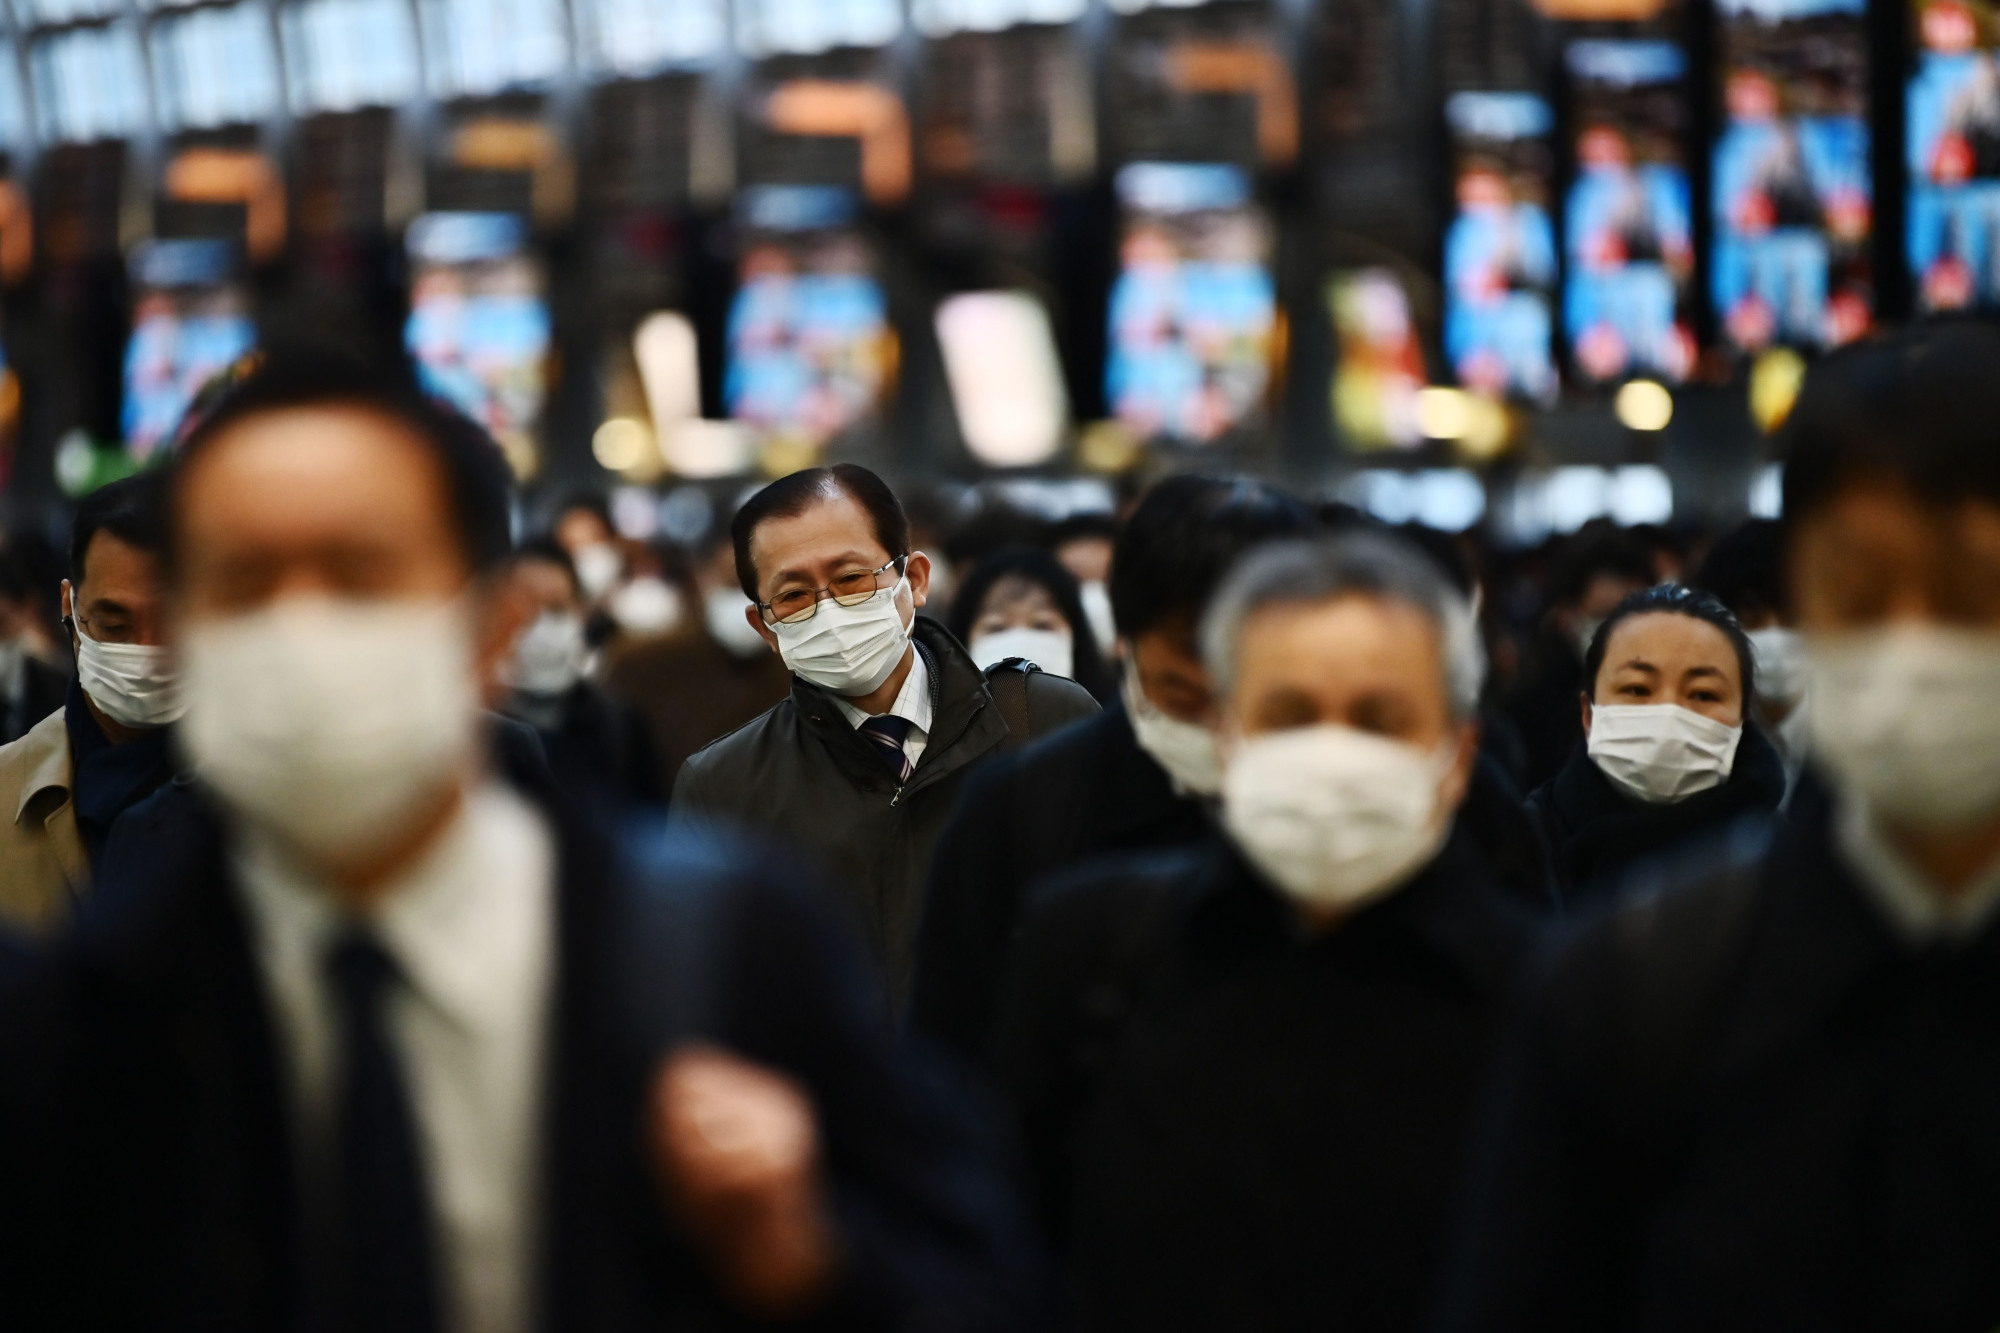 Mask-clad commuters make their way to work during morning rush hour at Shinagawa Station in Tokyo on Friday. | AFP-JIJI